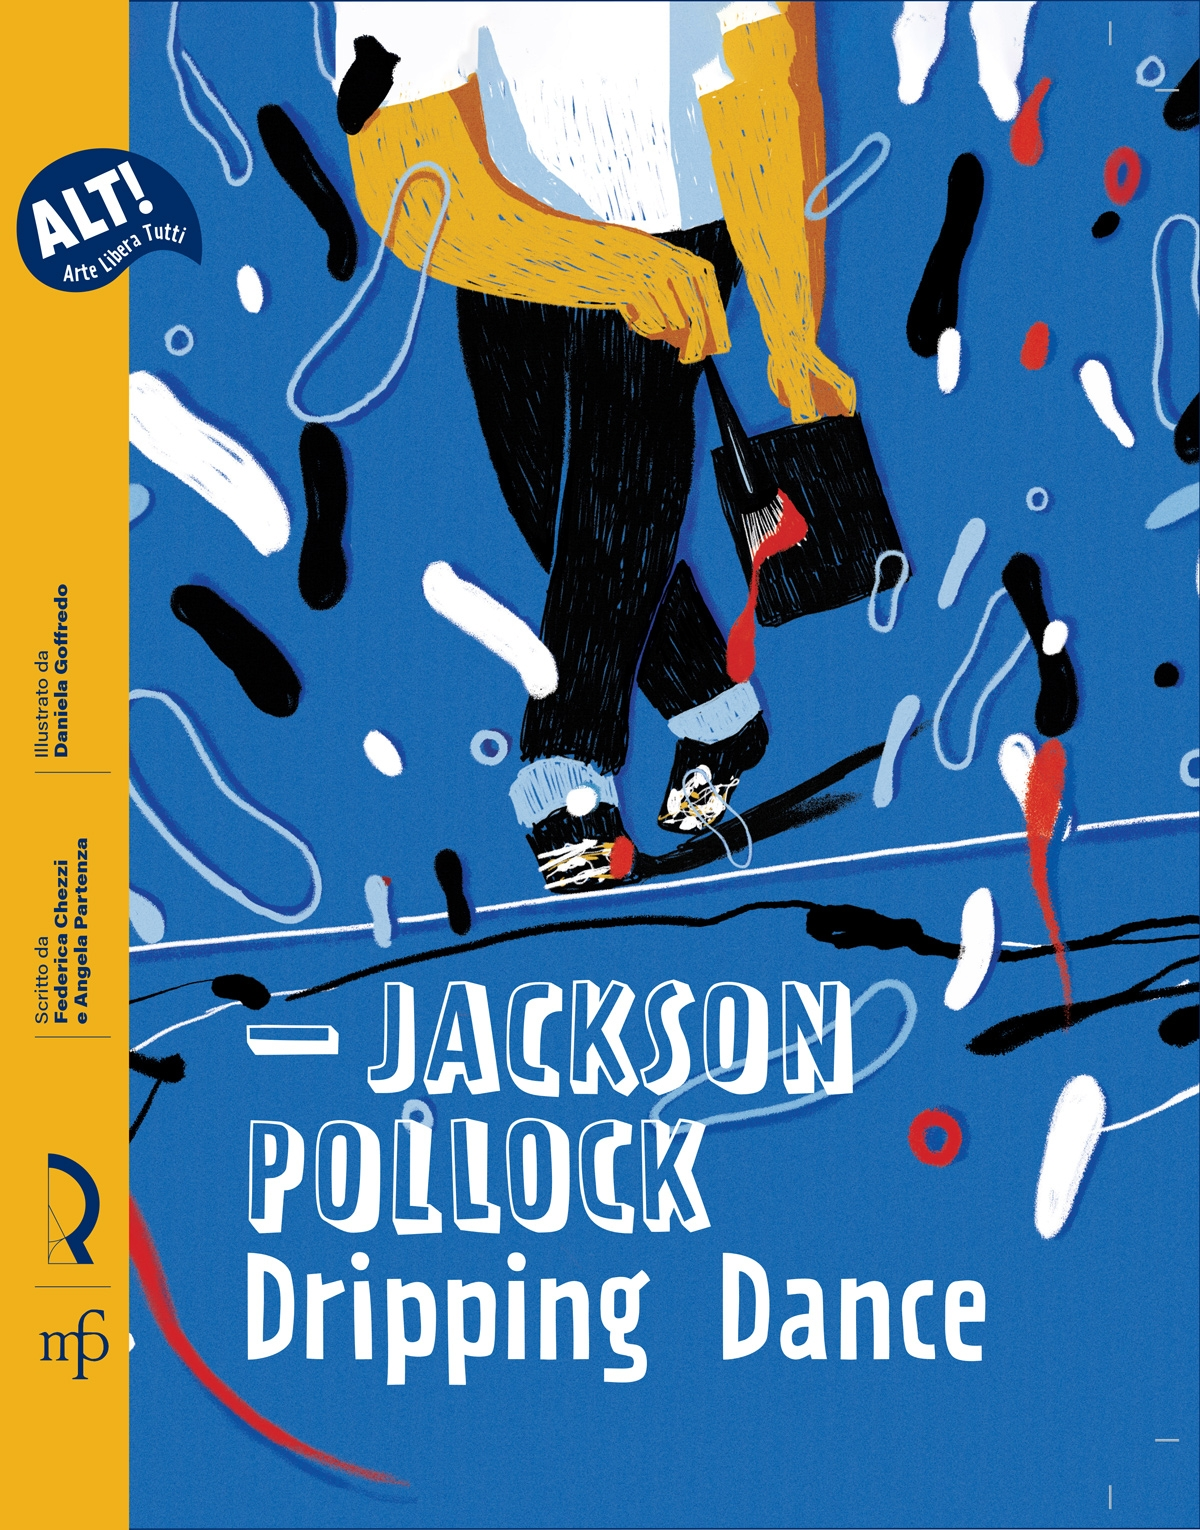 Jackson Pollock dripping dance